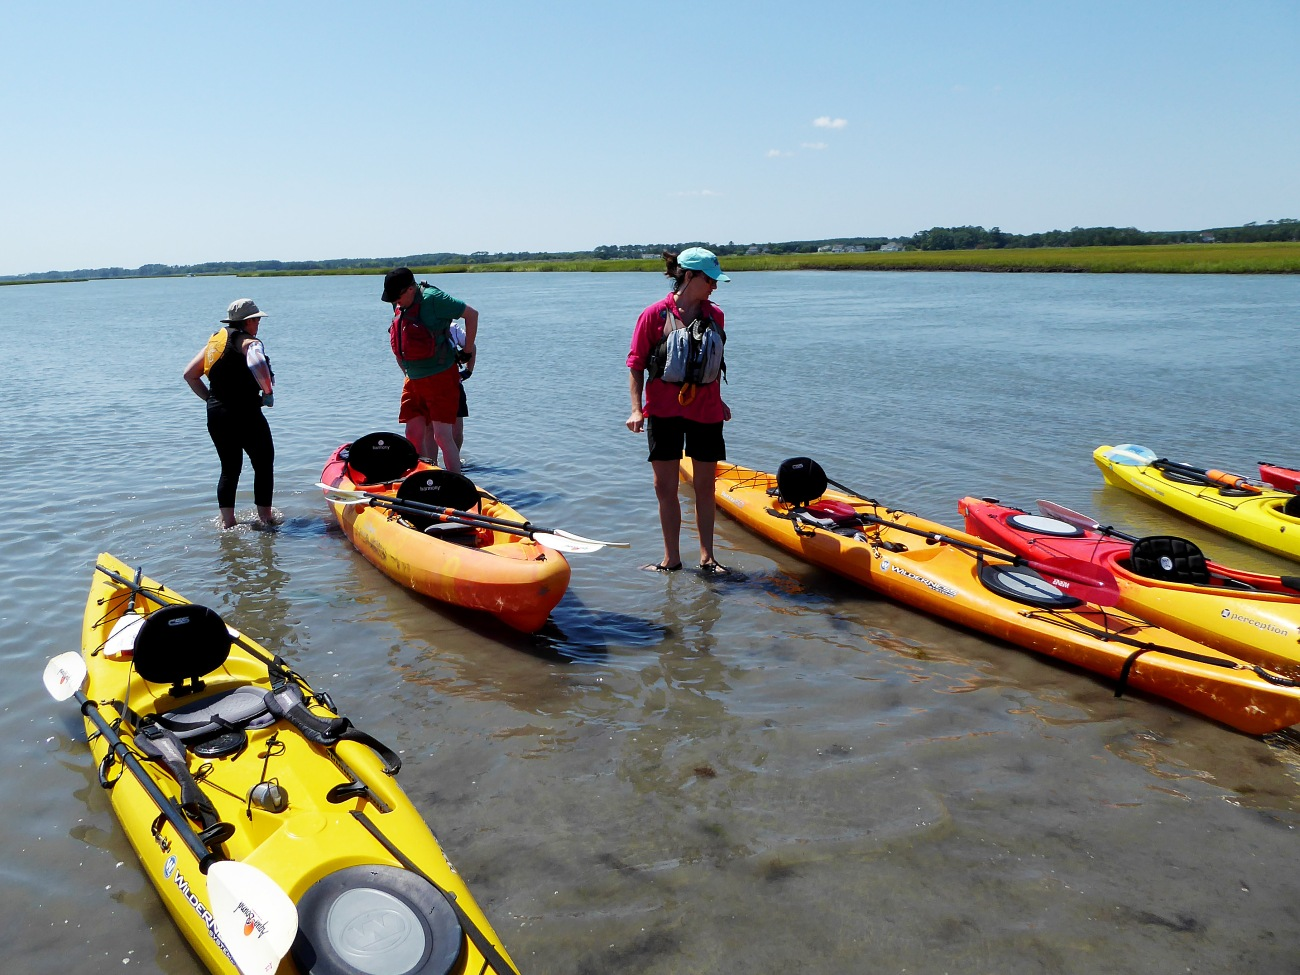 20160827_134139_Rest stop on the mud flat